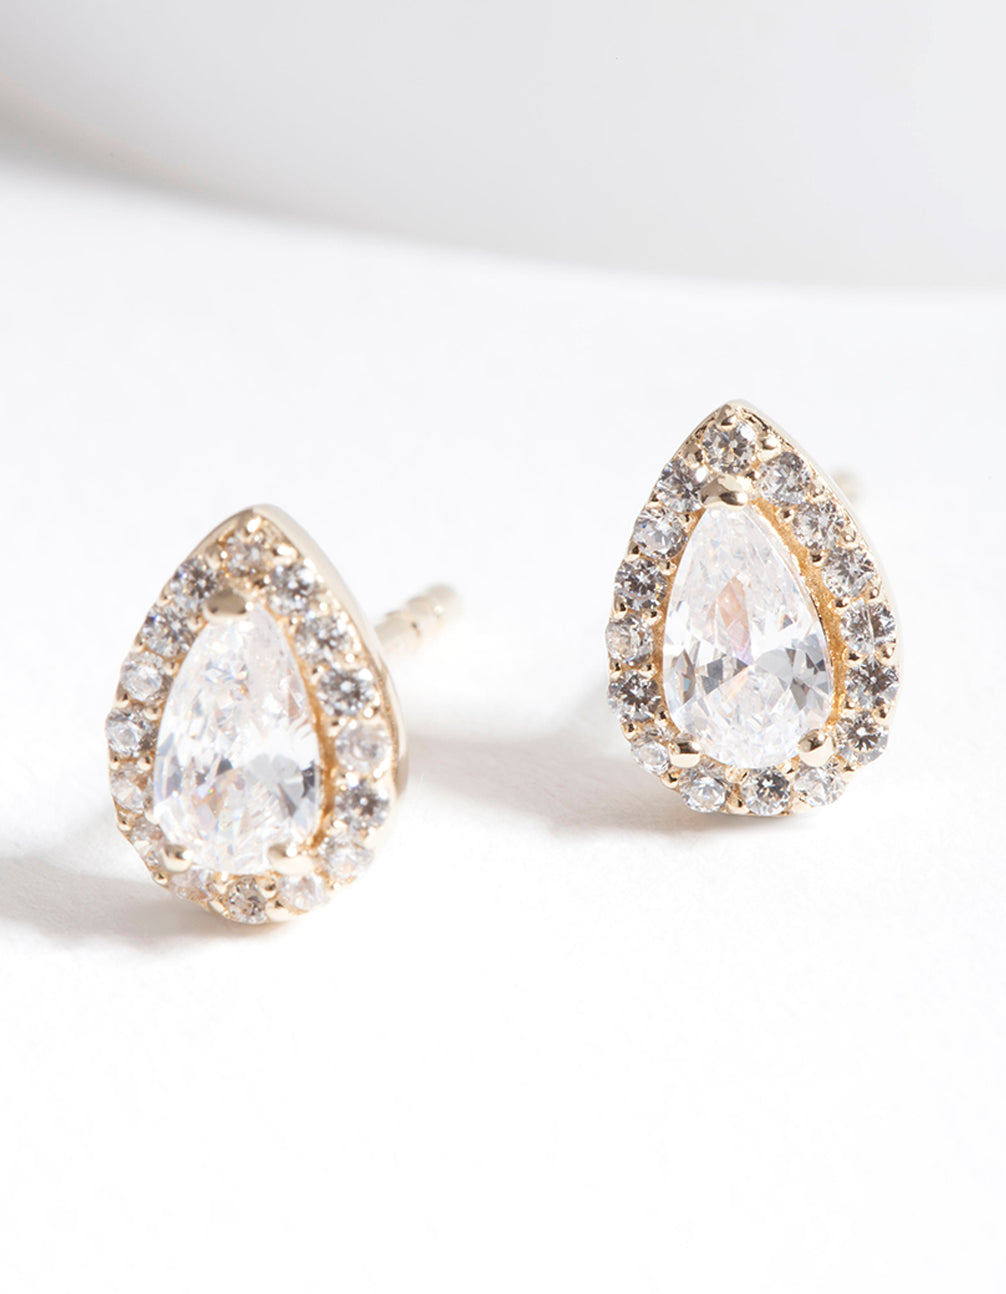 Gold Plated Sterling Silver Cubic Zirconia Pear Halo Stud Earrings